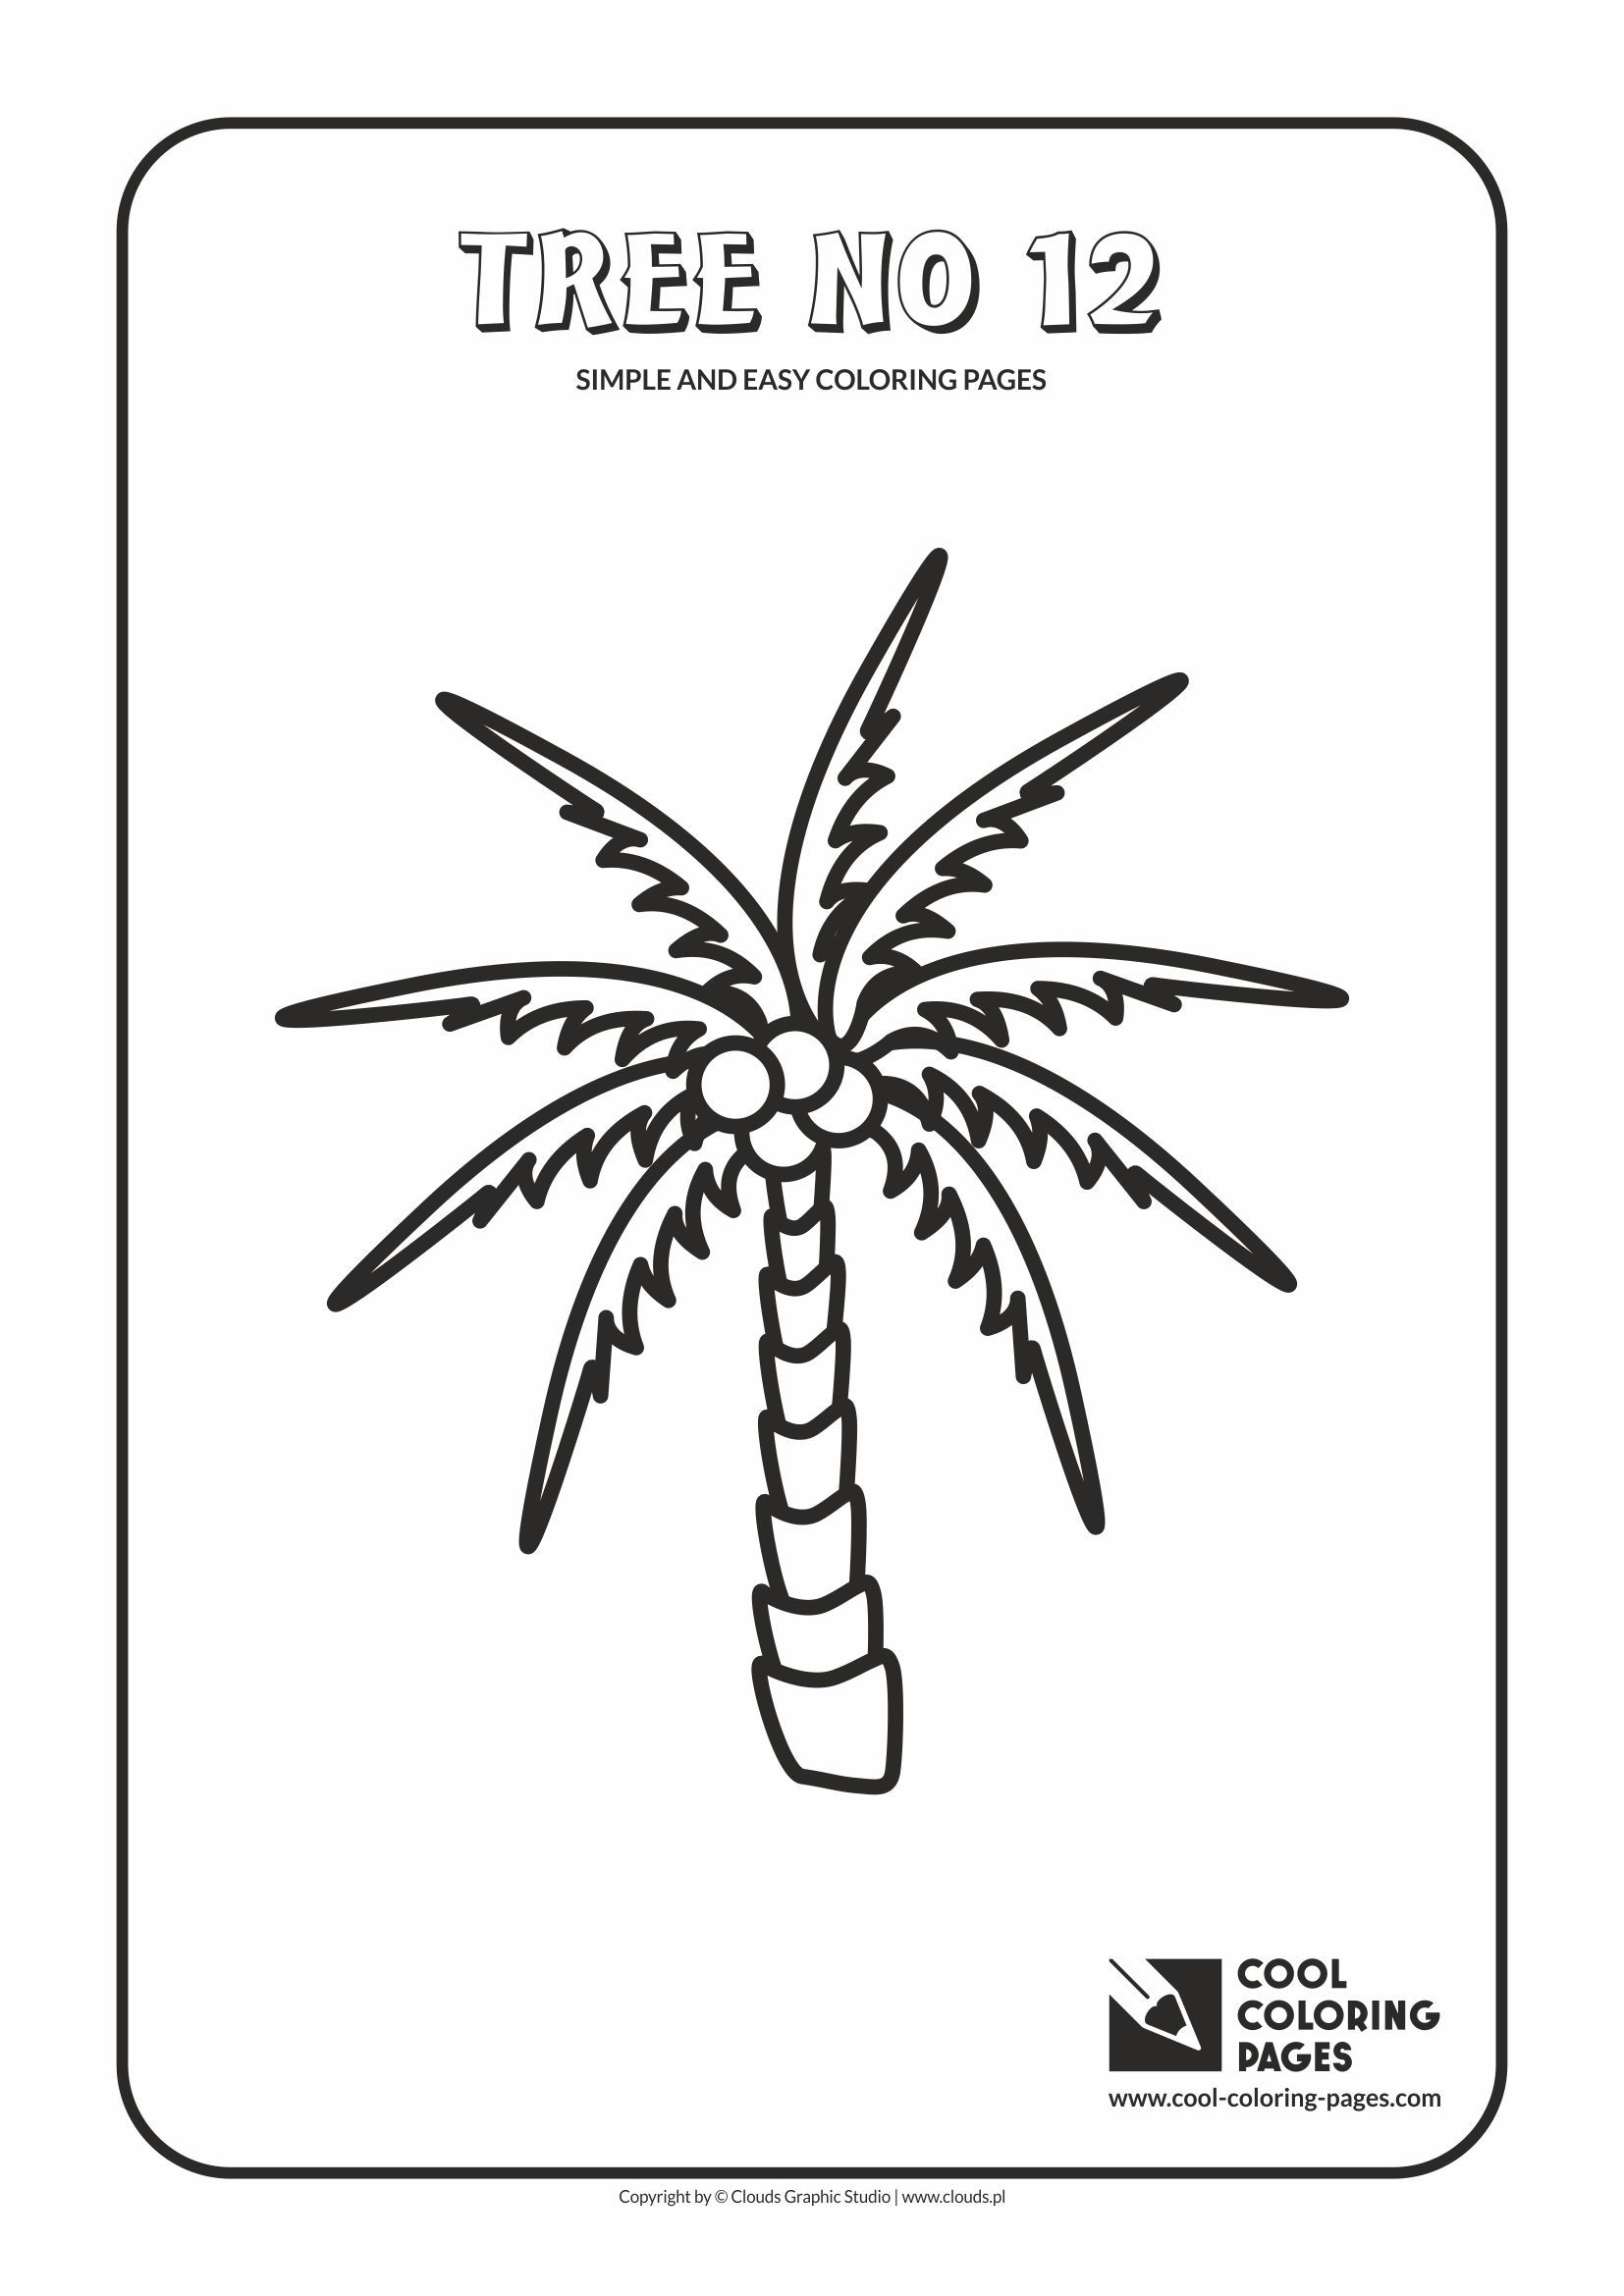 simple and easy coloring pages for toddlers tree no 12 - Simple Colouring Pages For Toddlers